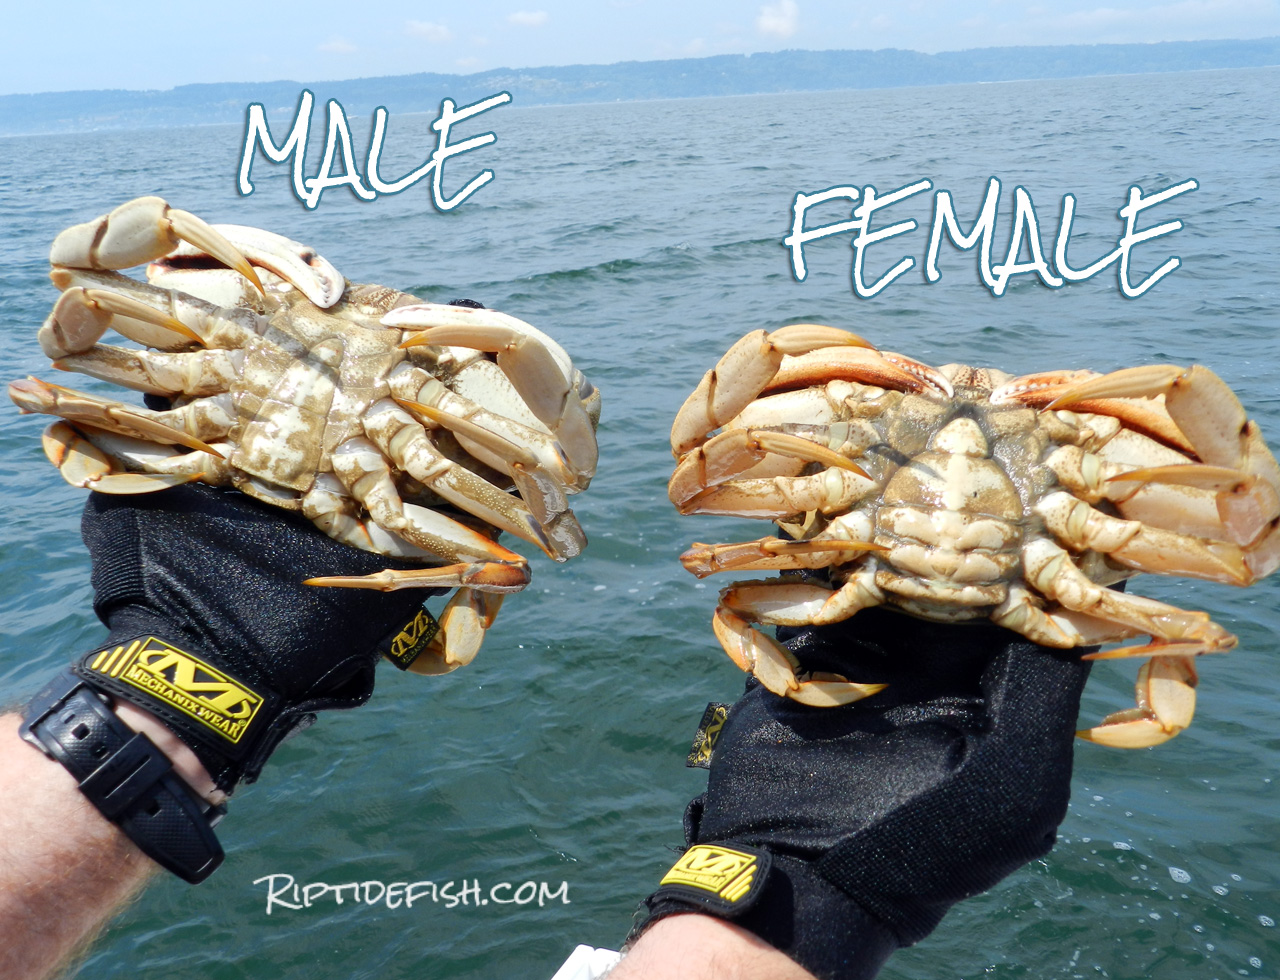 Dungeness Crab Male Female Image